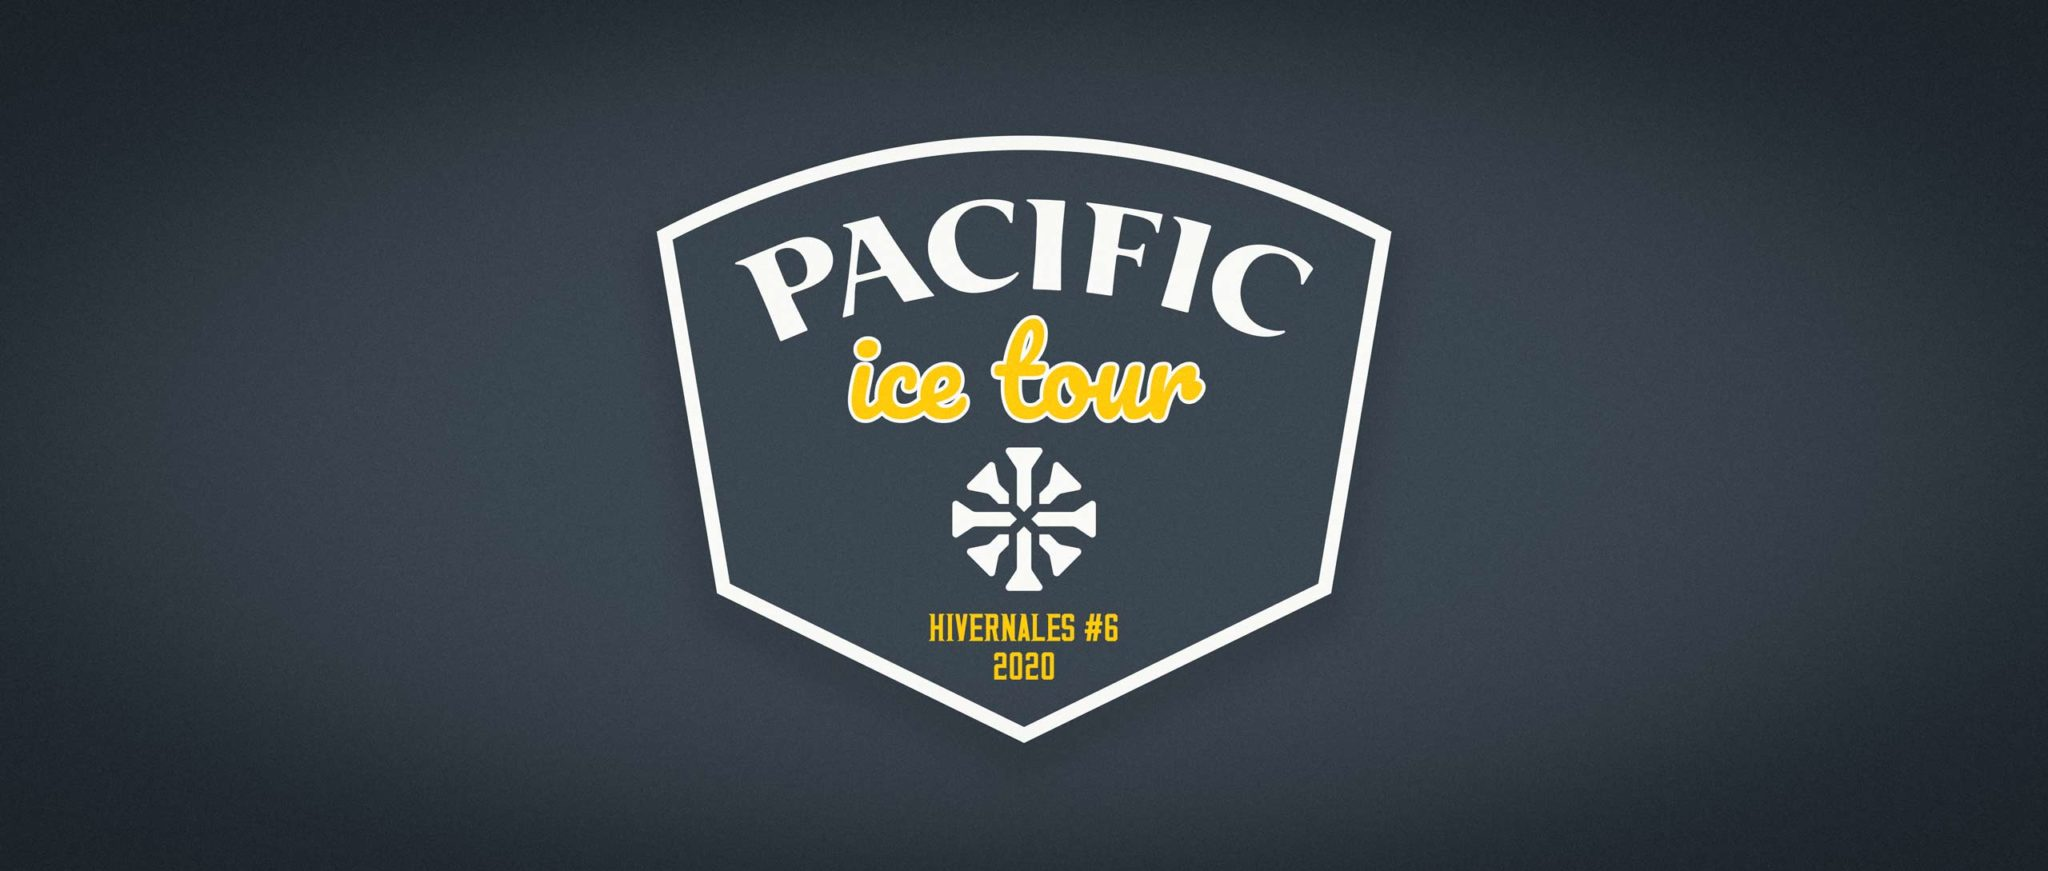 Pacific Ice Tour 2020 Header